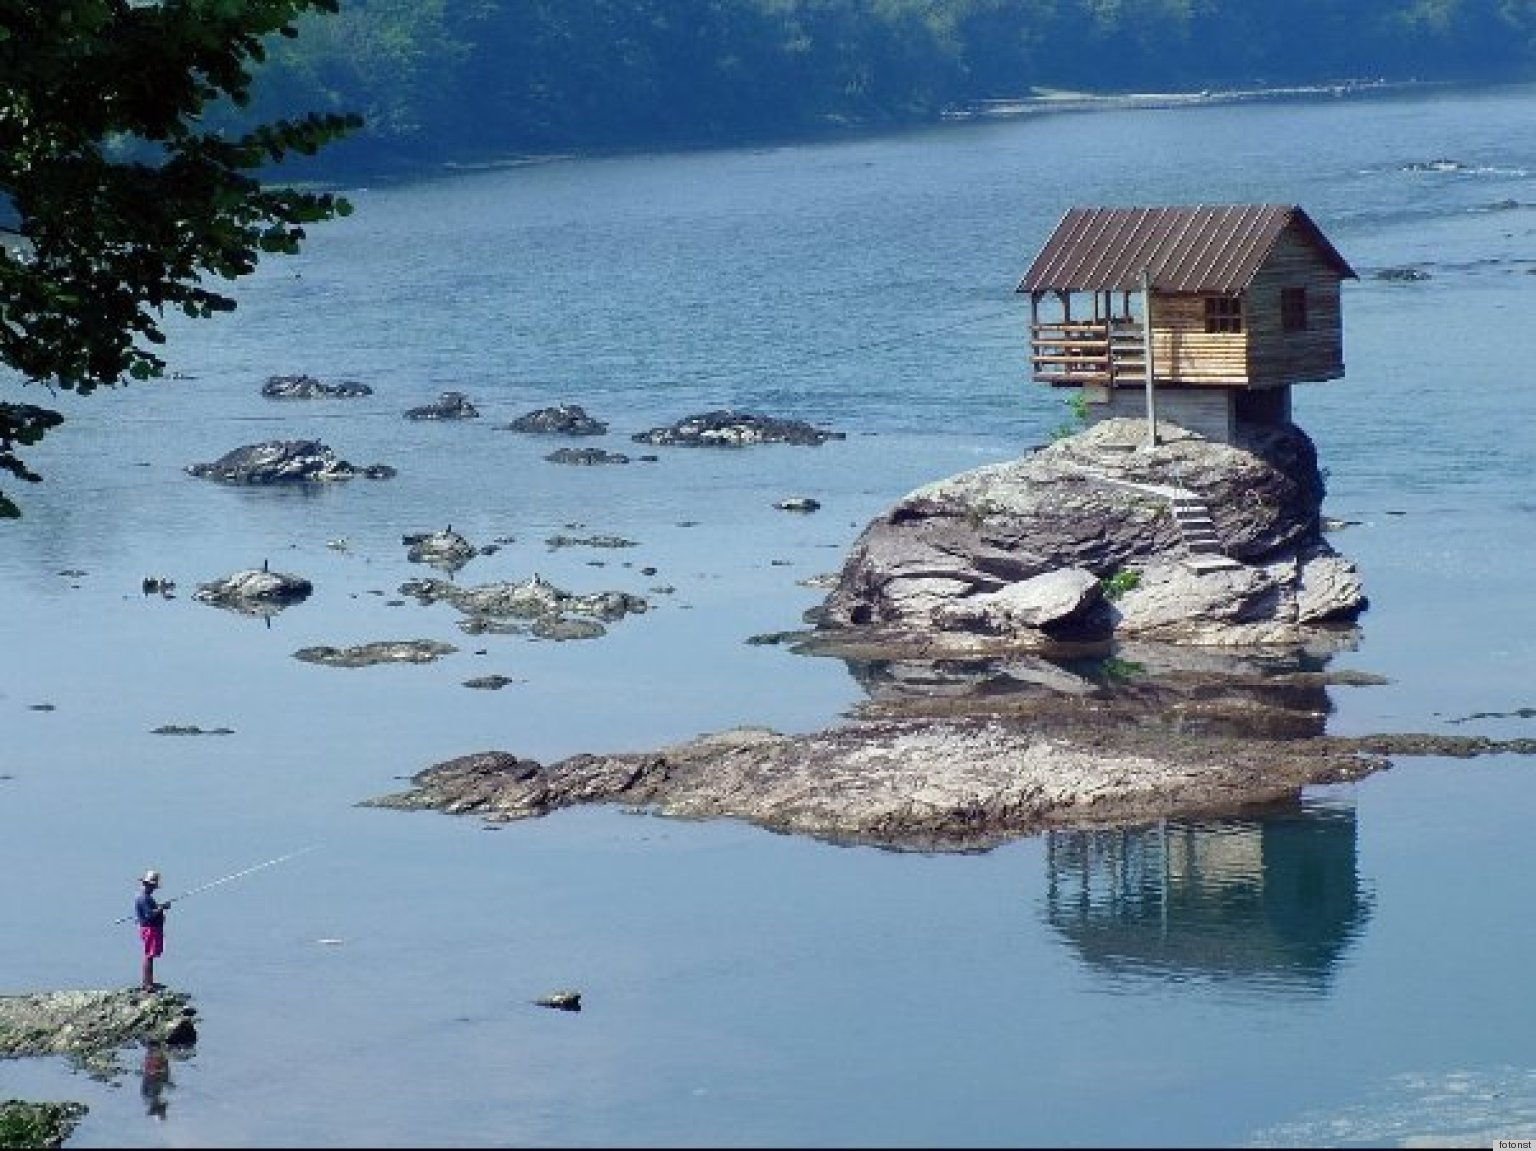 Tiny Home On Drina River In Serbia Sits On Rock Surrounded